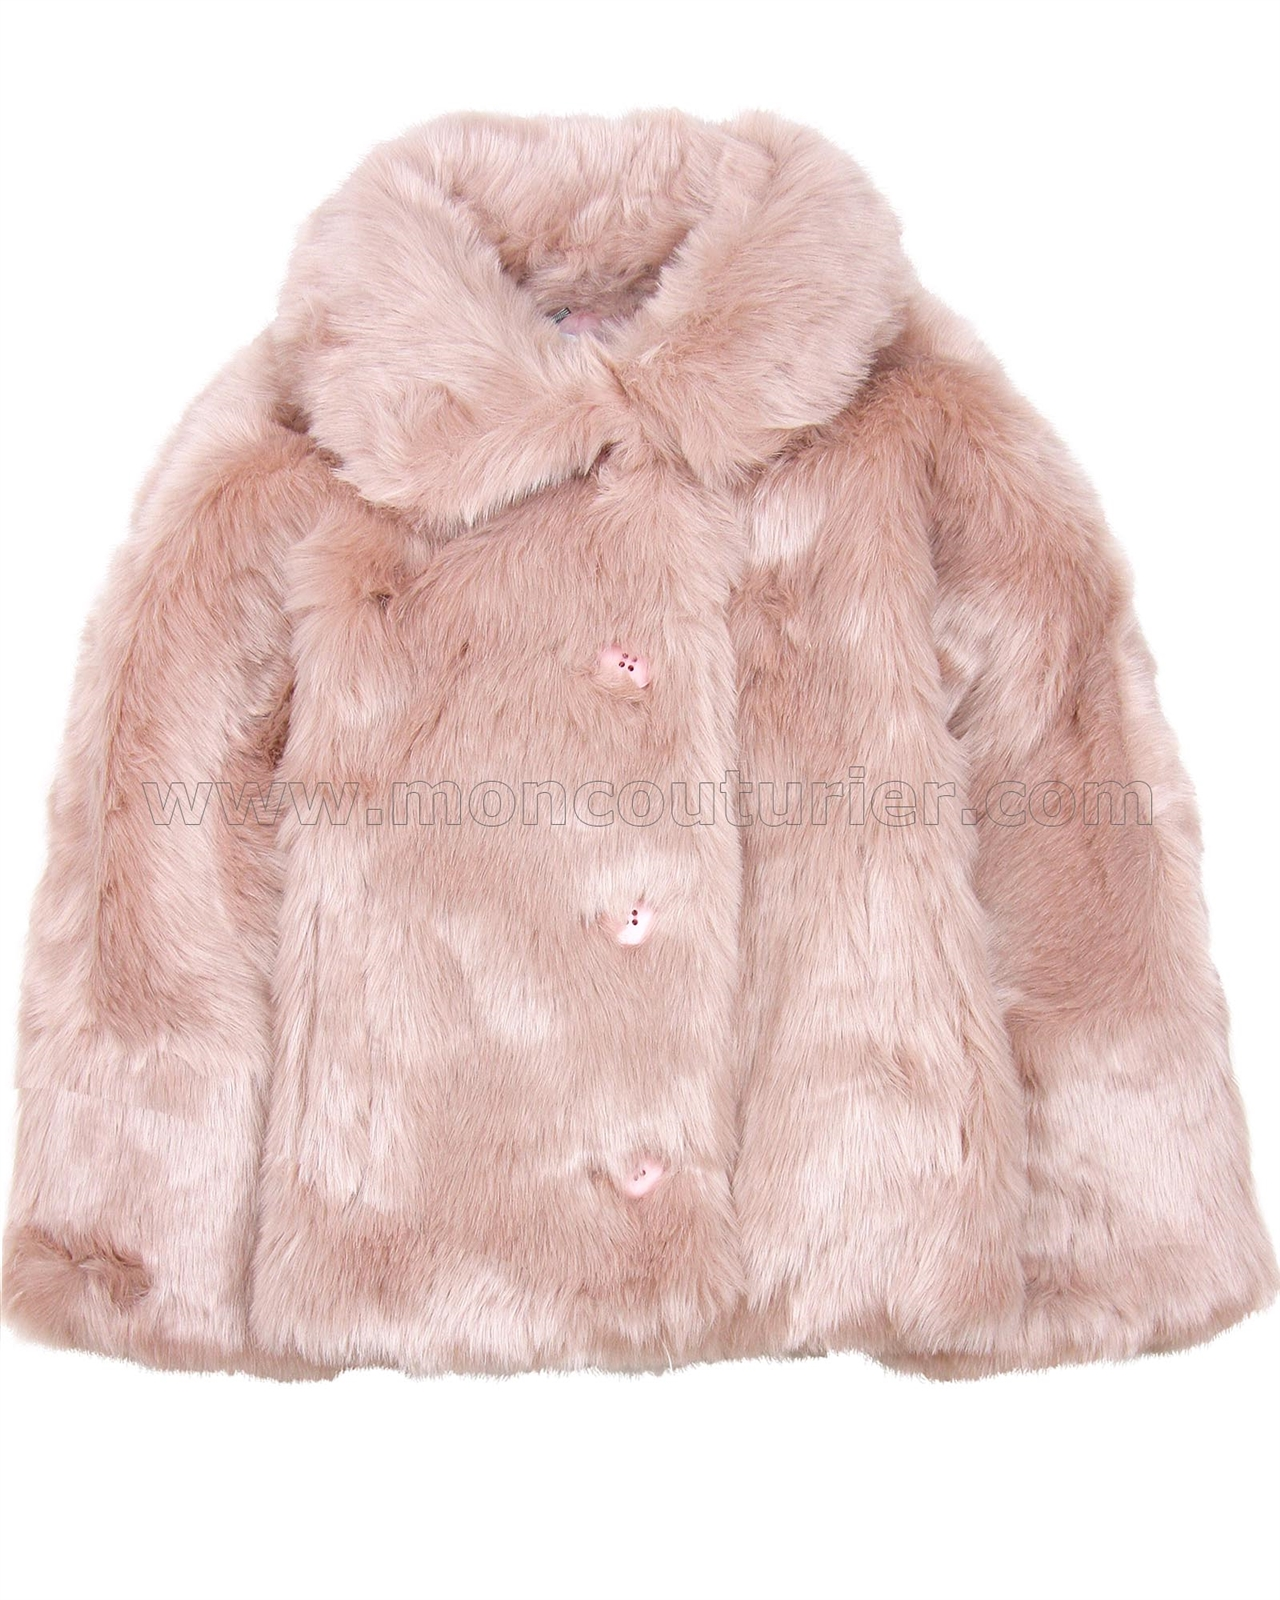 Shop the latest styles of Womens Faux Fur Coats at Macys. Check out our designer collection of chic coats including peacoats, trench coats, puffer coats and more!